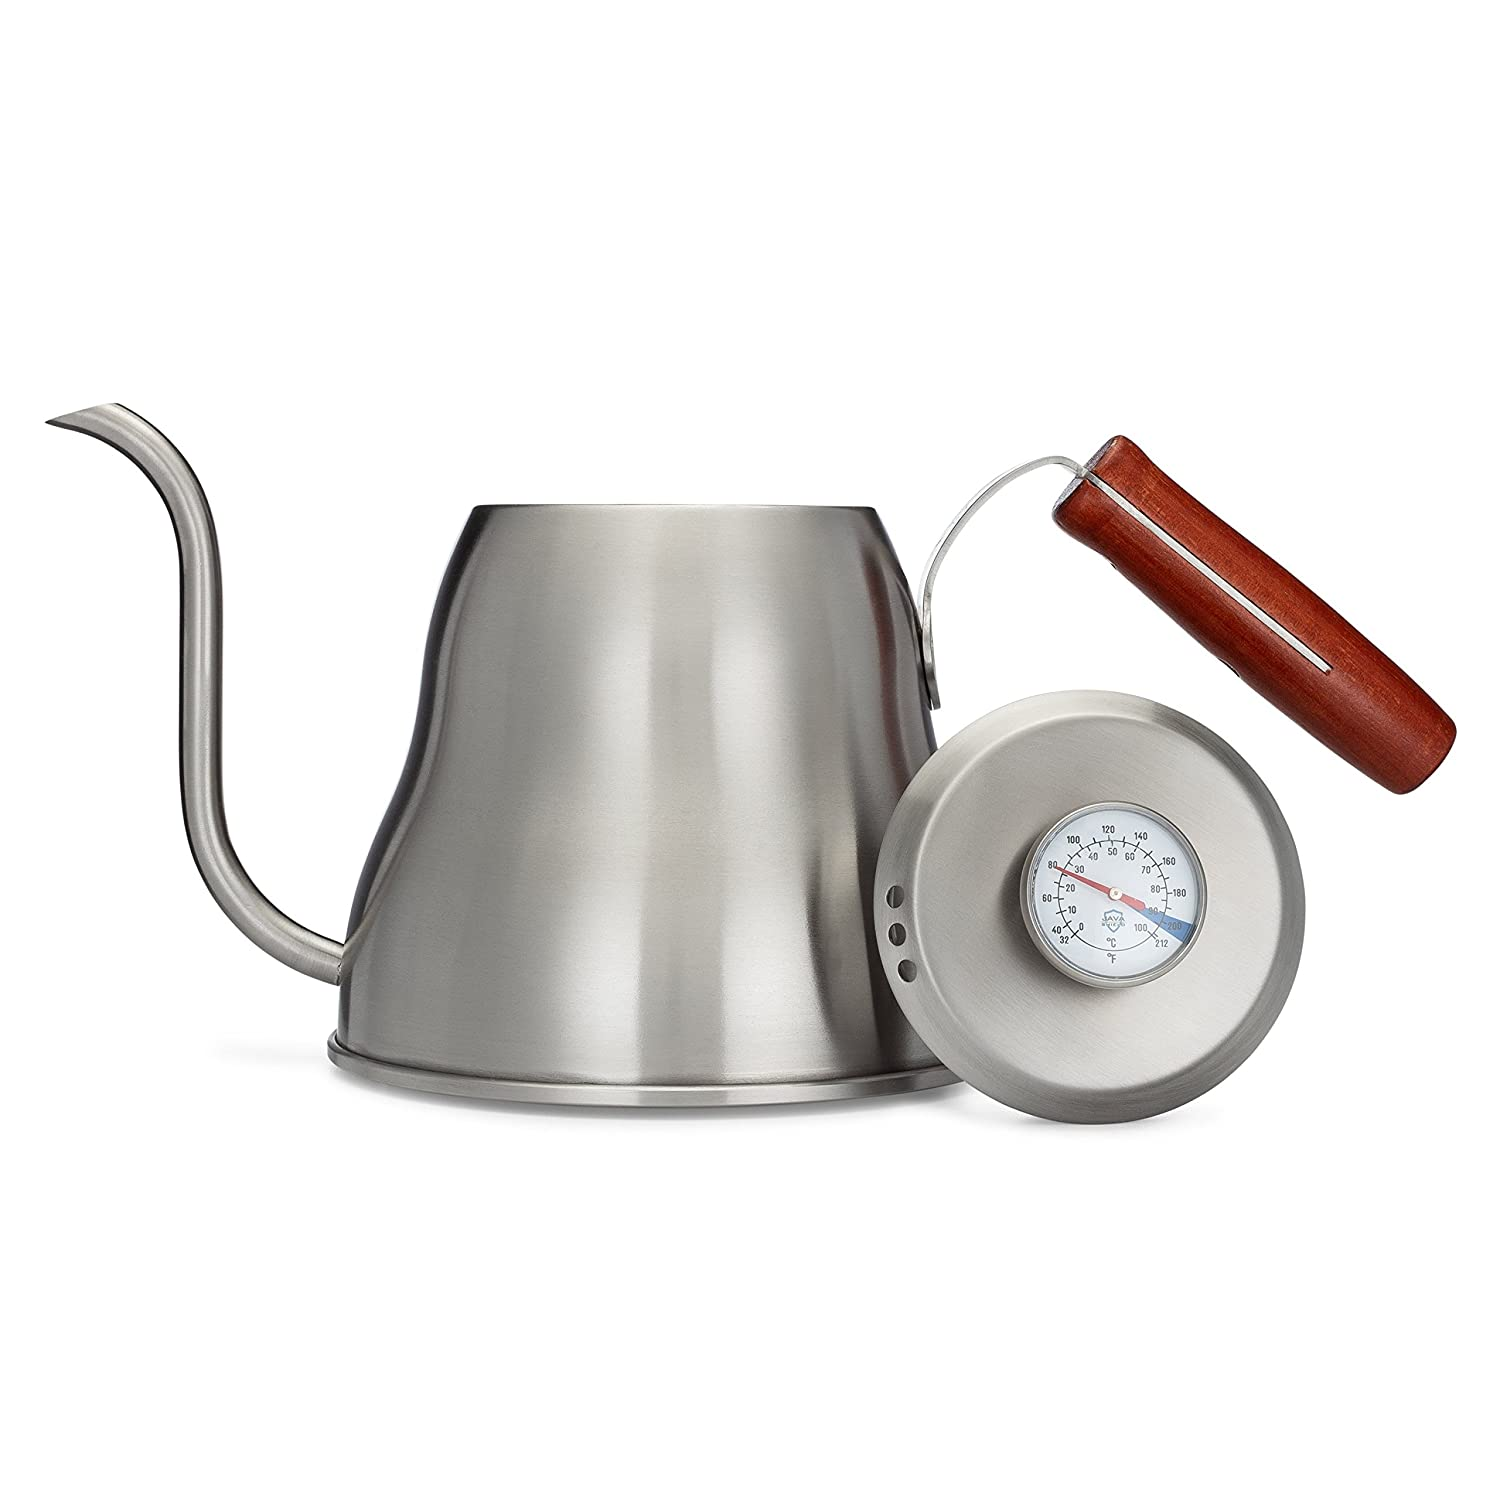 Java Shield Pour Over Kettle – Built-In Thermometer 1.2 Liter 40floz Stainless Steel with Triple Layer Base Gooseneck Spout for a Precision Pour 1.2 Liter 40floz